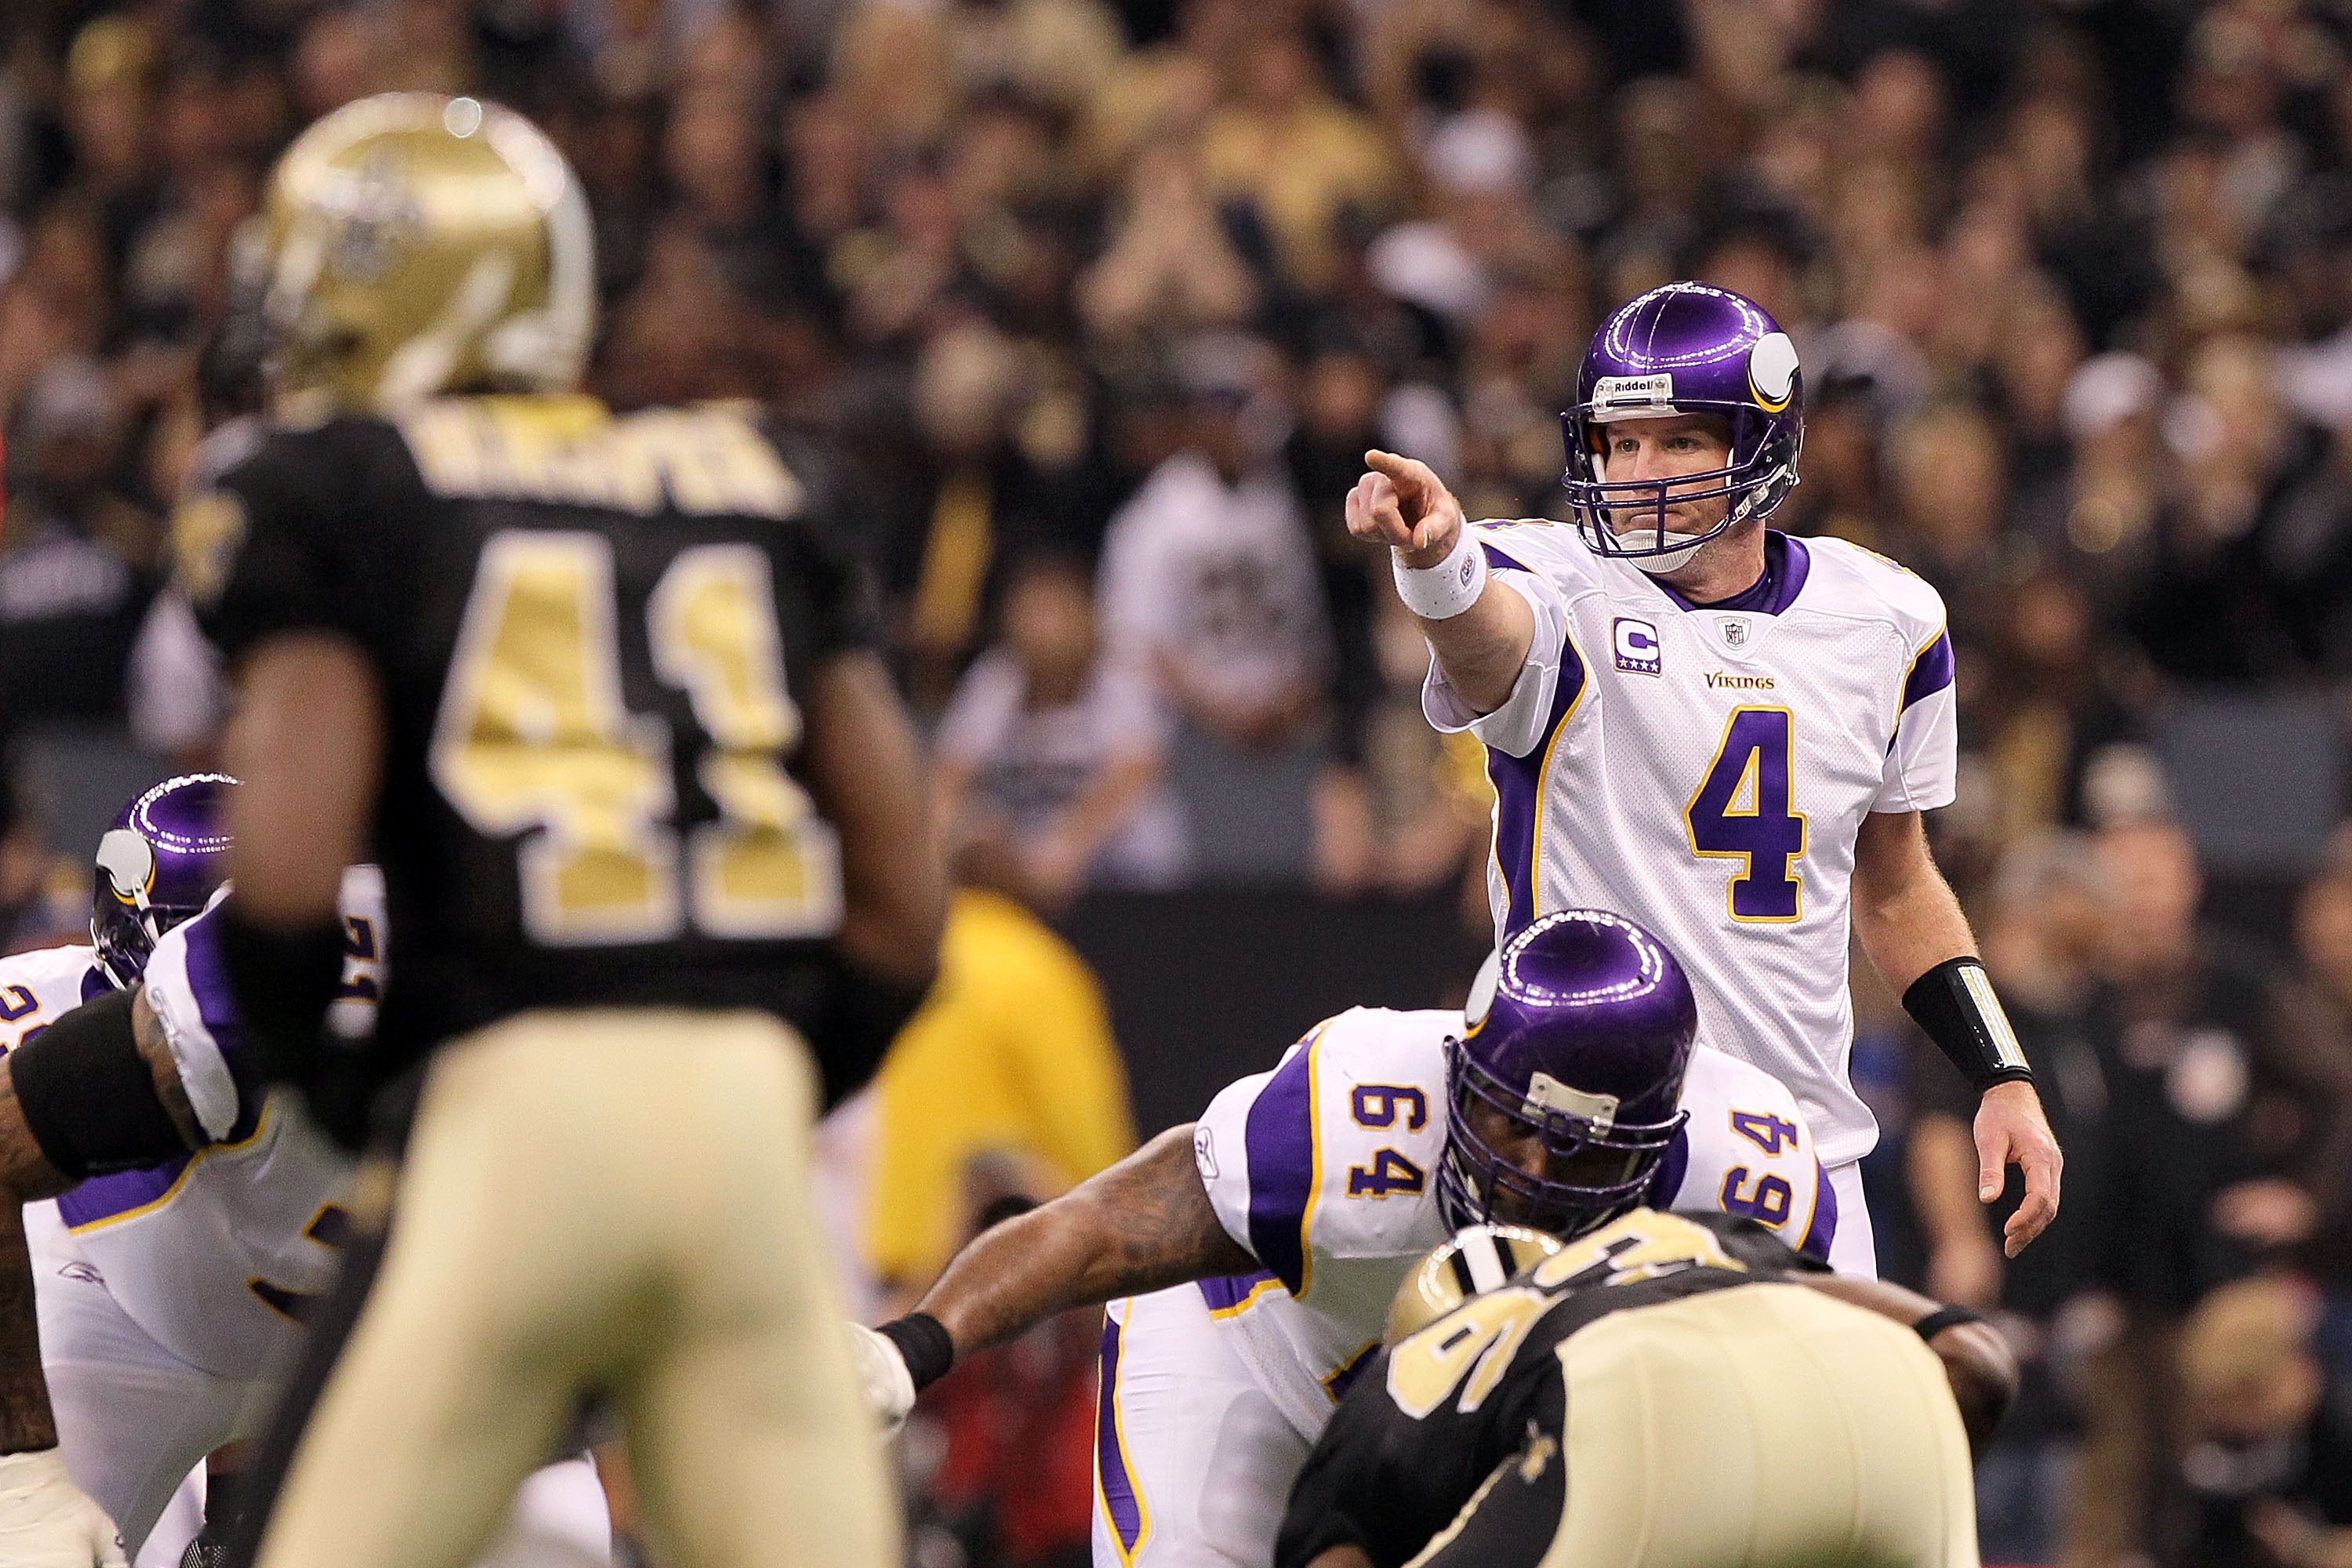 NEW ORLEANS - JANUARY 24:  Brett Favre #4 of the Minnesota Vikings gestures as he calls out signals in the shotgun formation against the New Orleans Saints during the NFC Championship Game at the Louisiana Superdome on January 24, 2010 in New Orleans, Lou